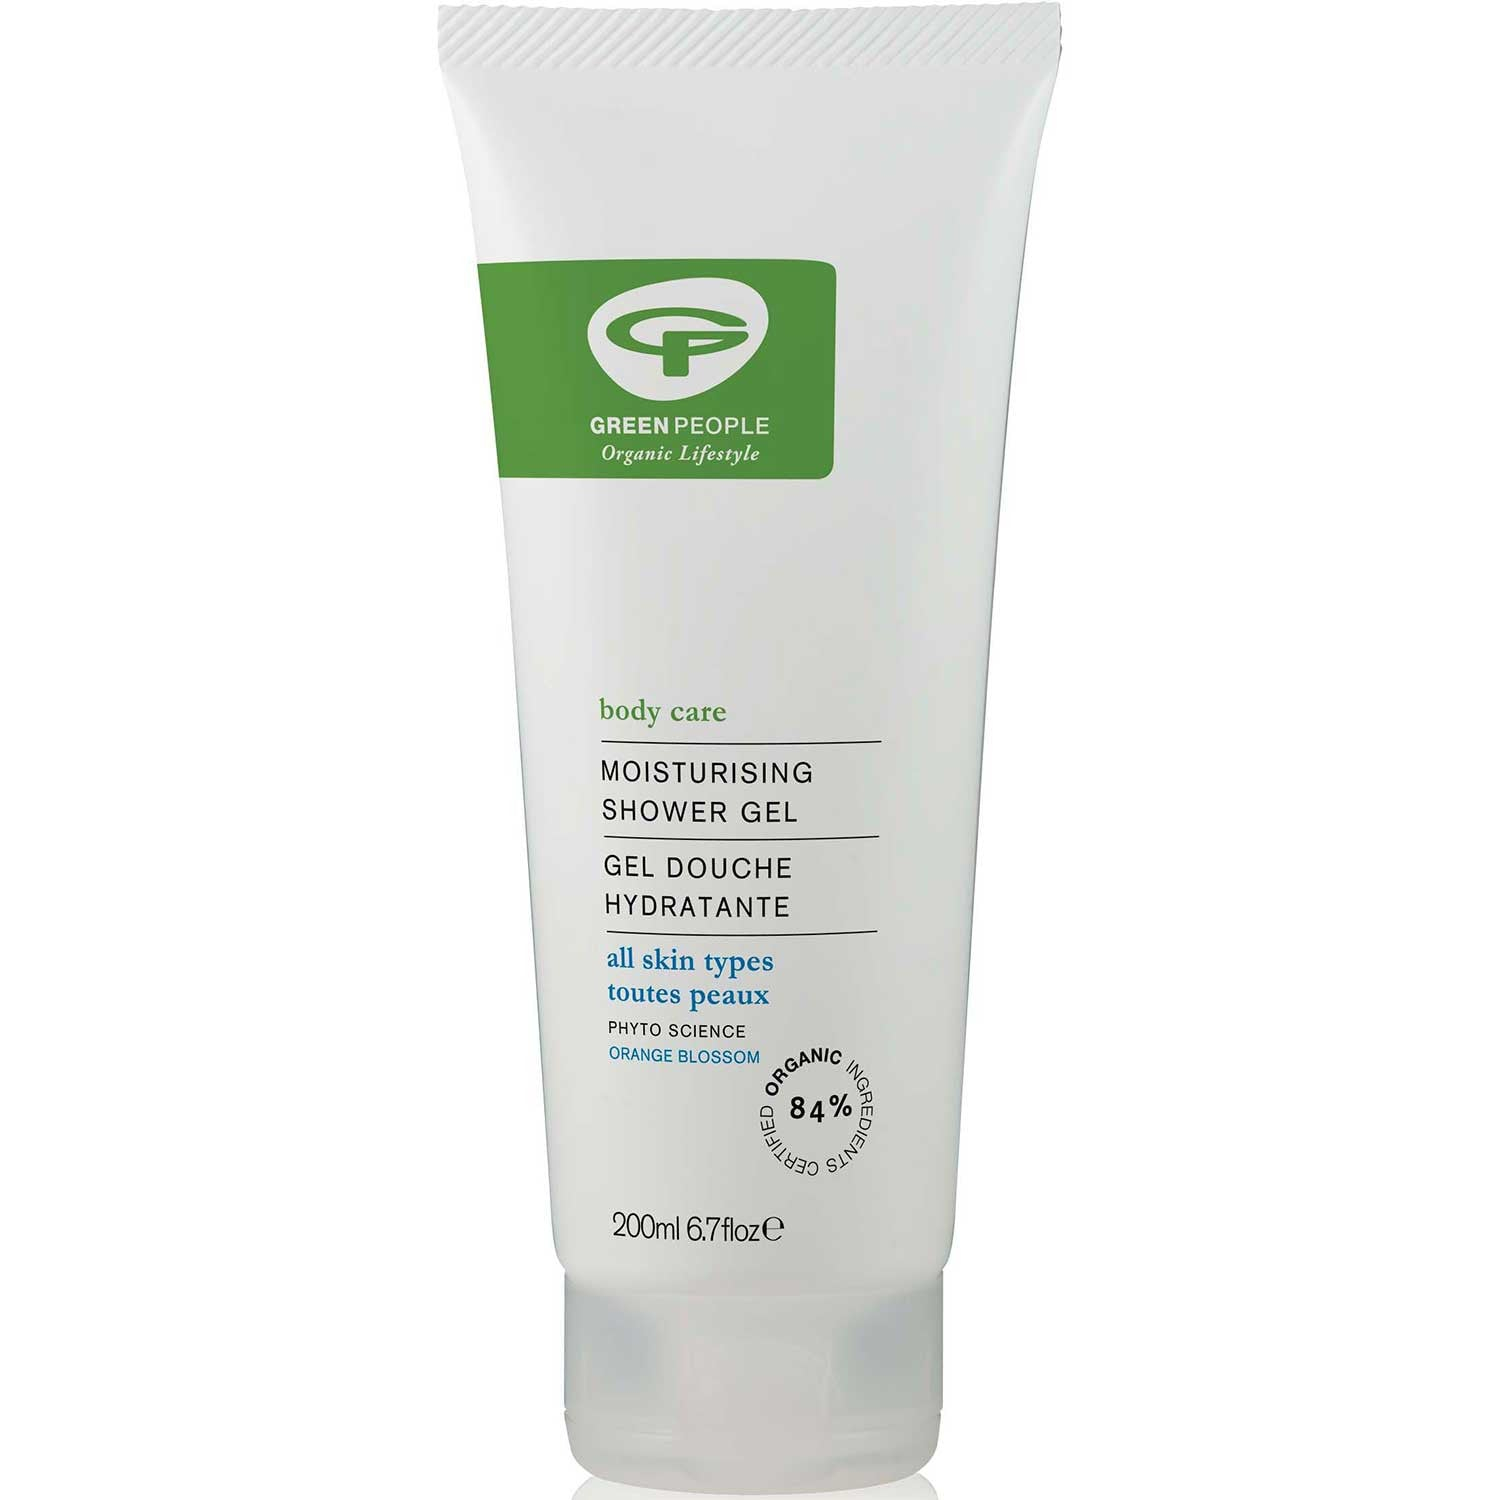 Green People Moisturising Shower Gel, 200 ml.